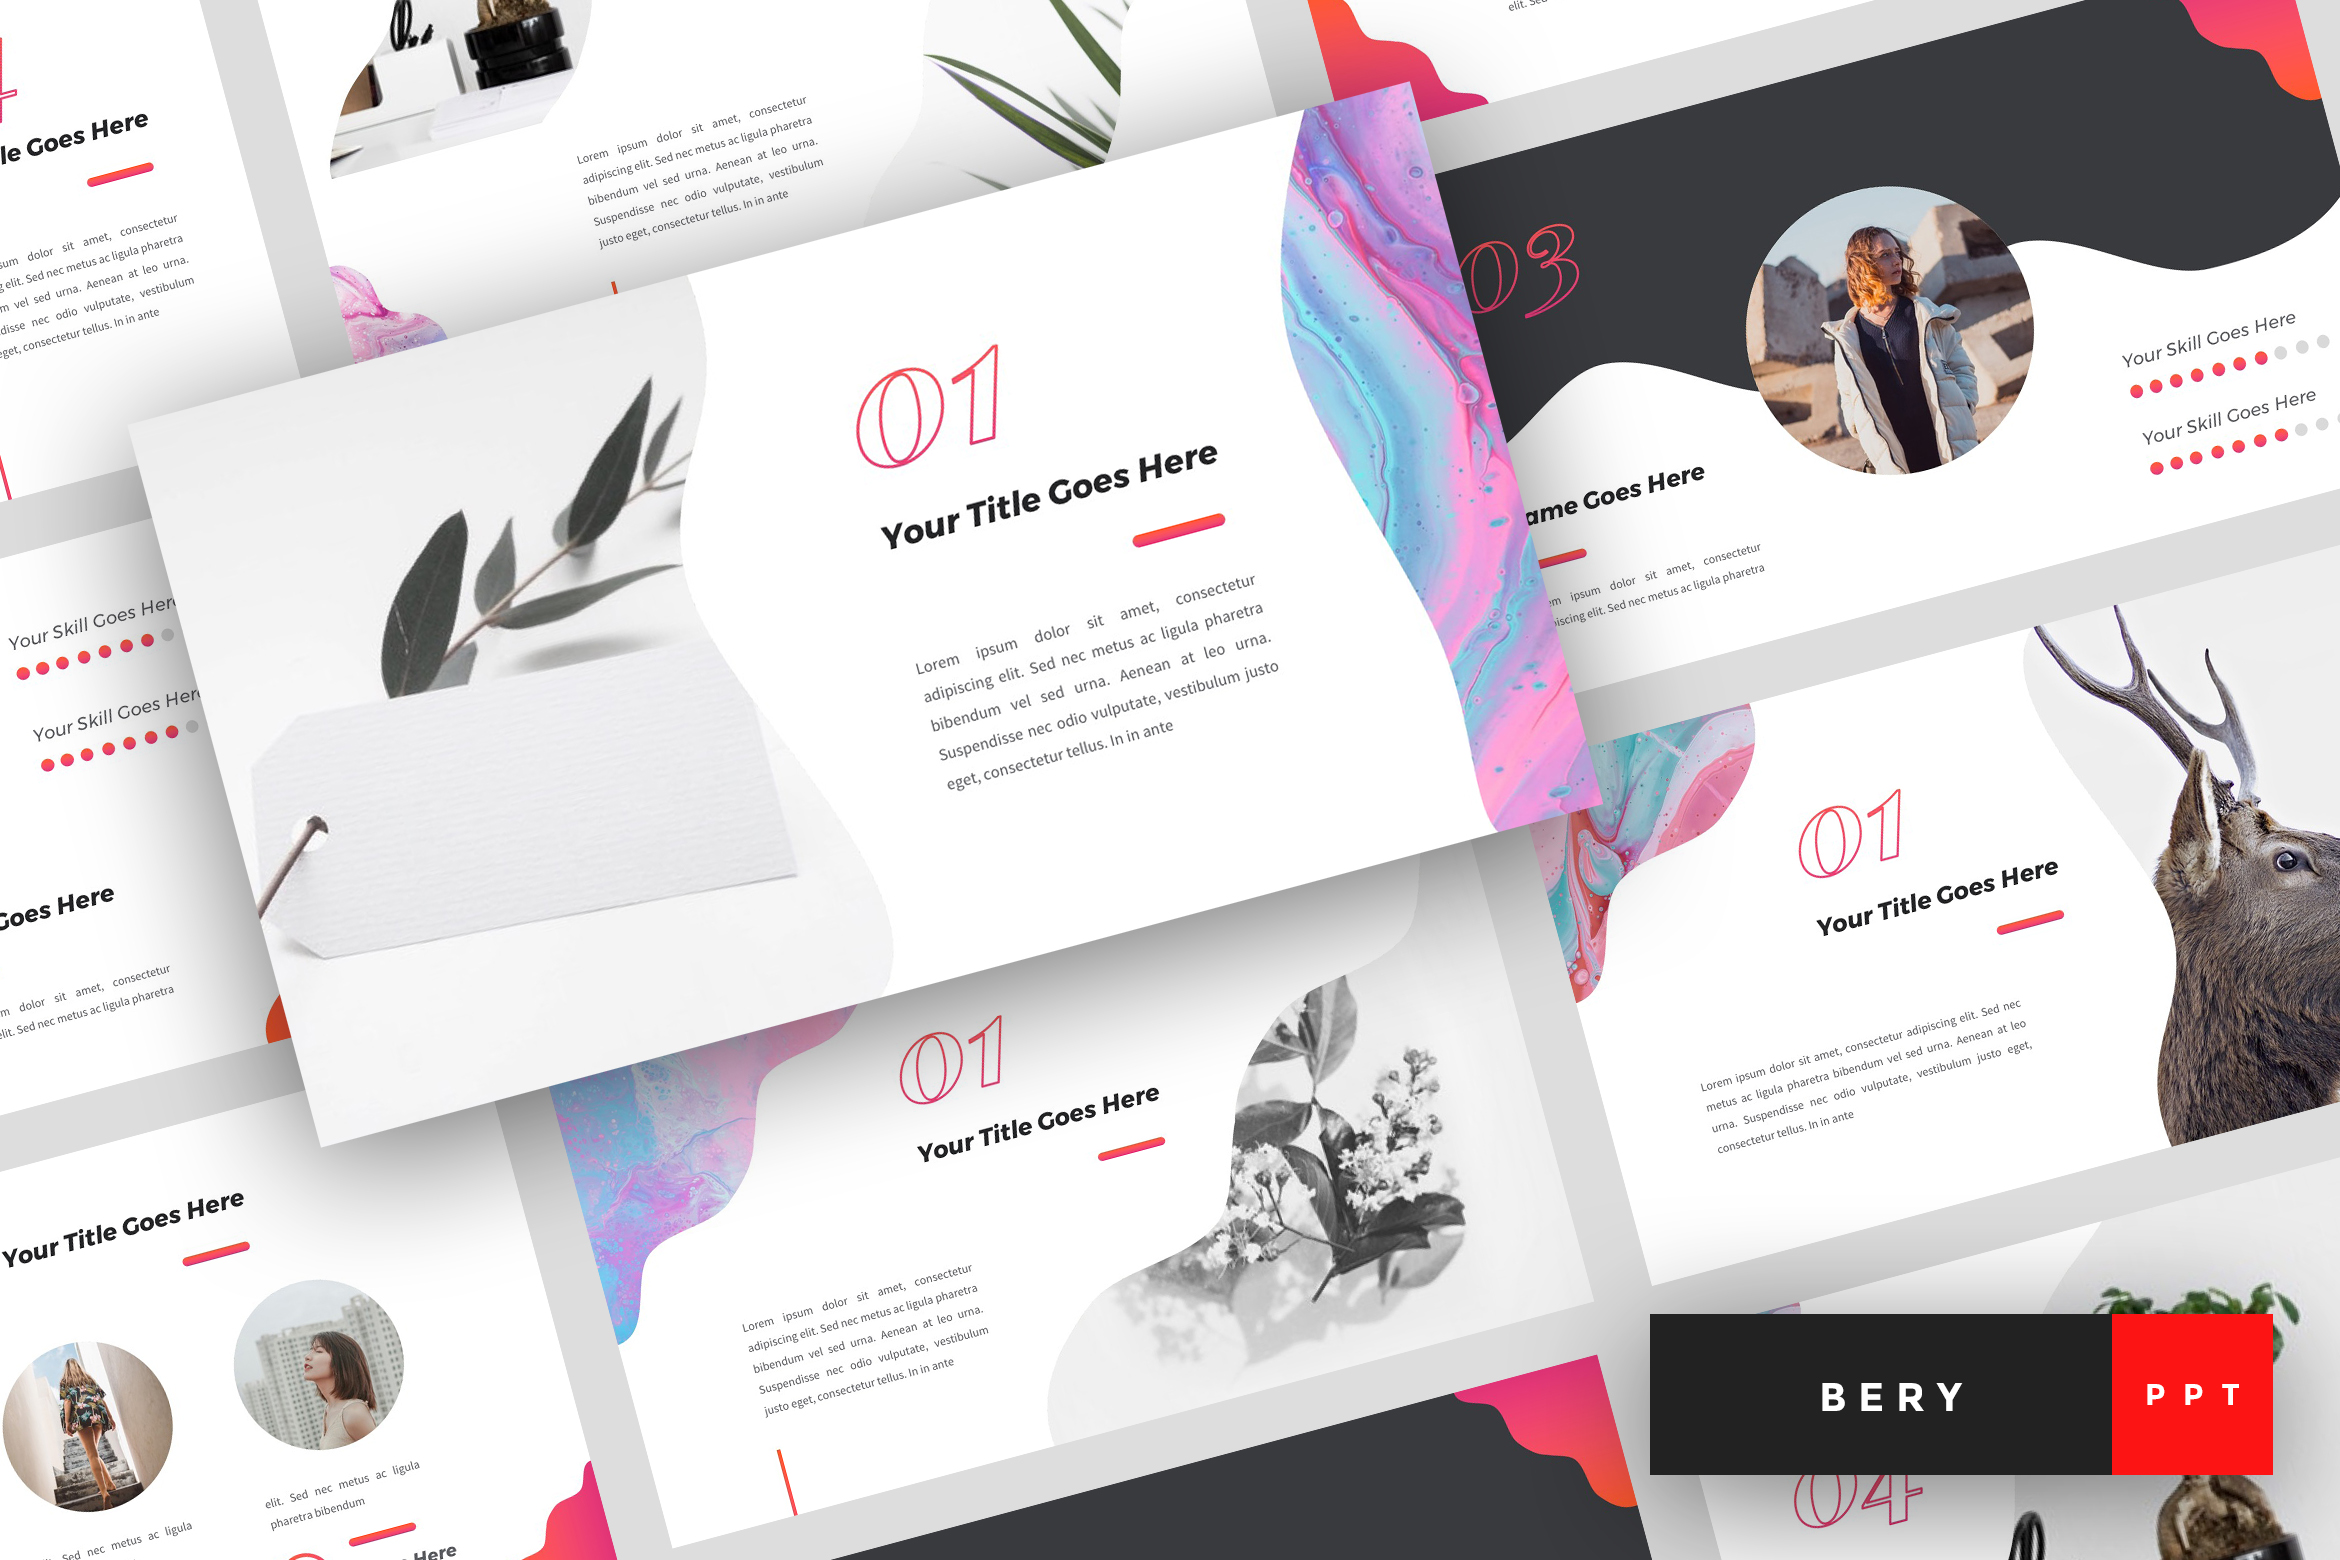 Bery - Creative PowerPoint Template example image 1